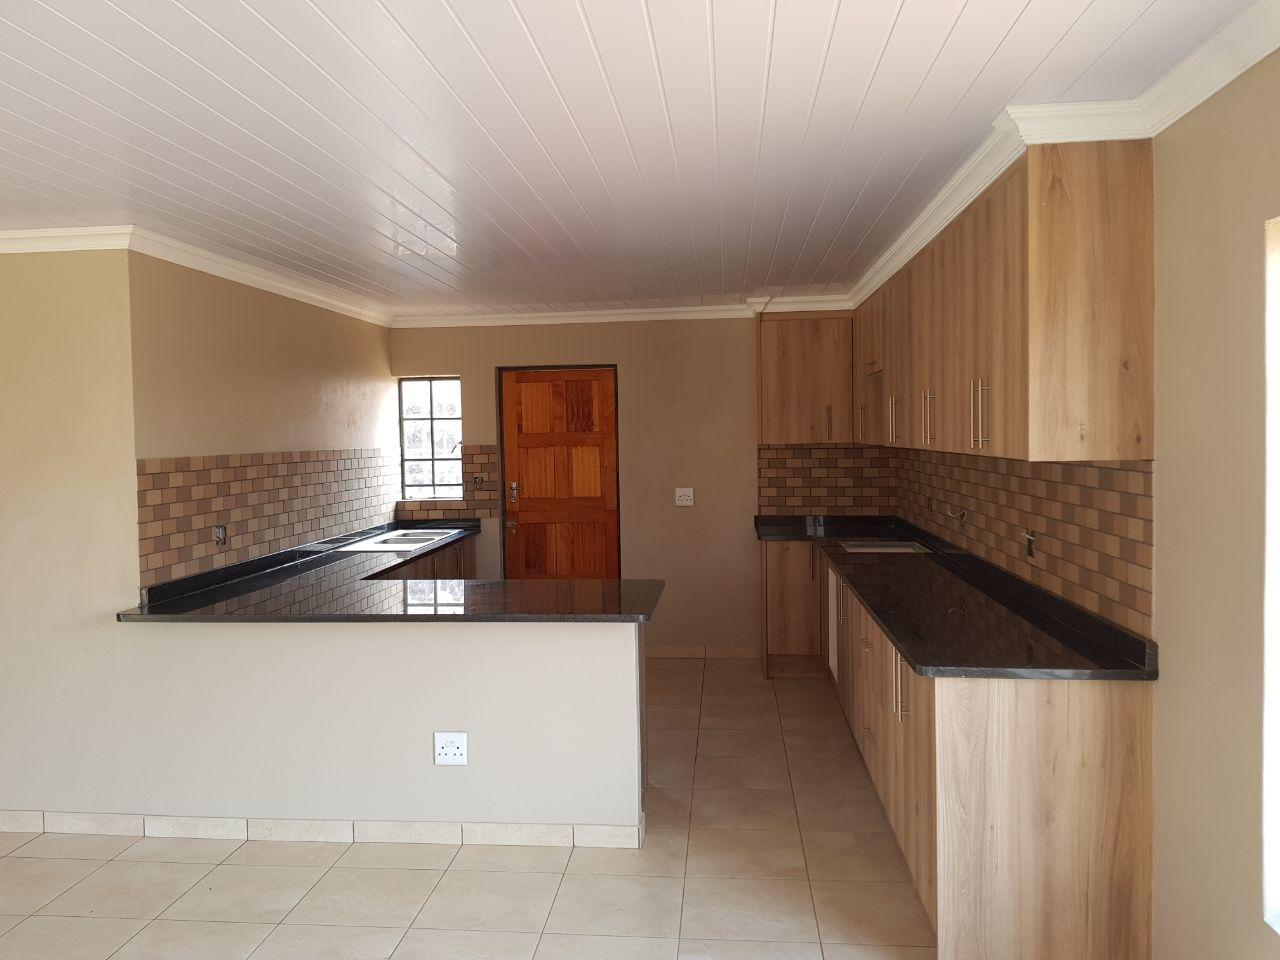 3 BedroomTownhouse For Sale In Mooinooi